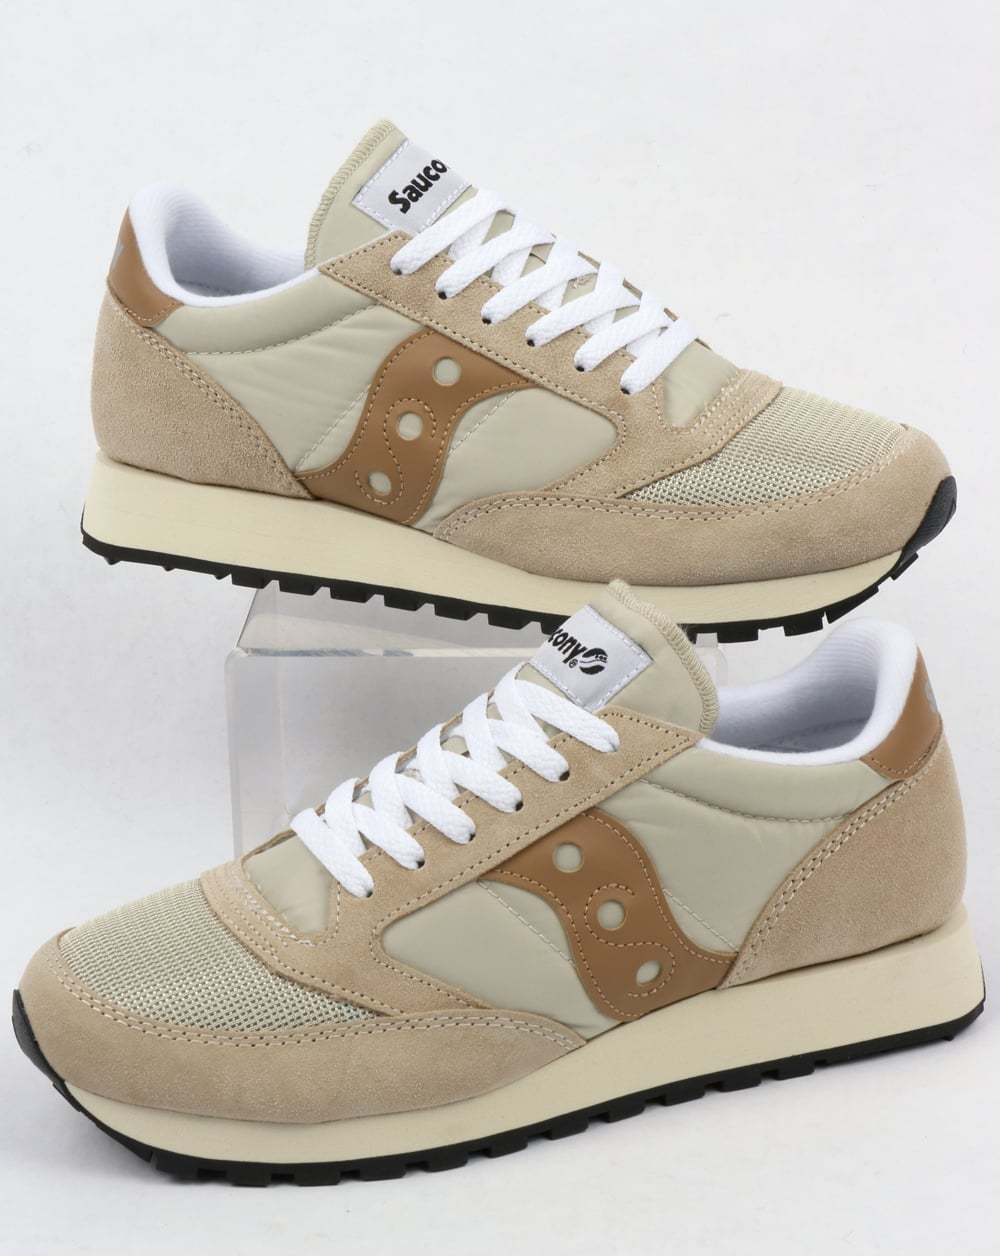 bcdb41e1d9 Saucony Jazz Original Vintage Trainers Cement/Tan